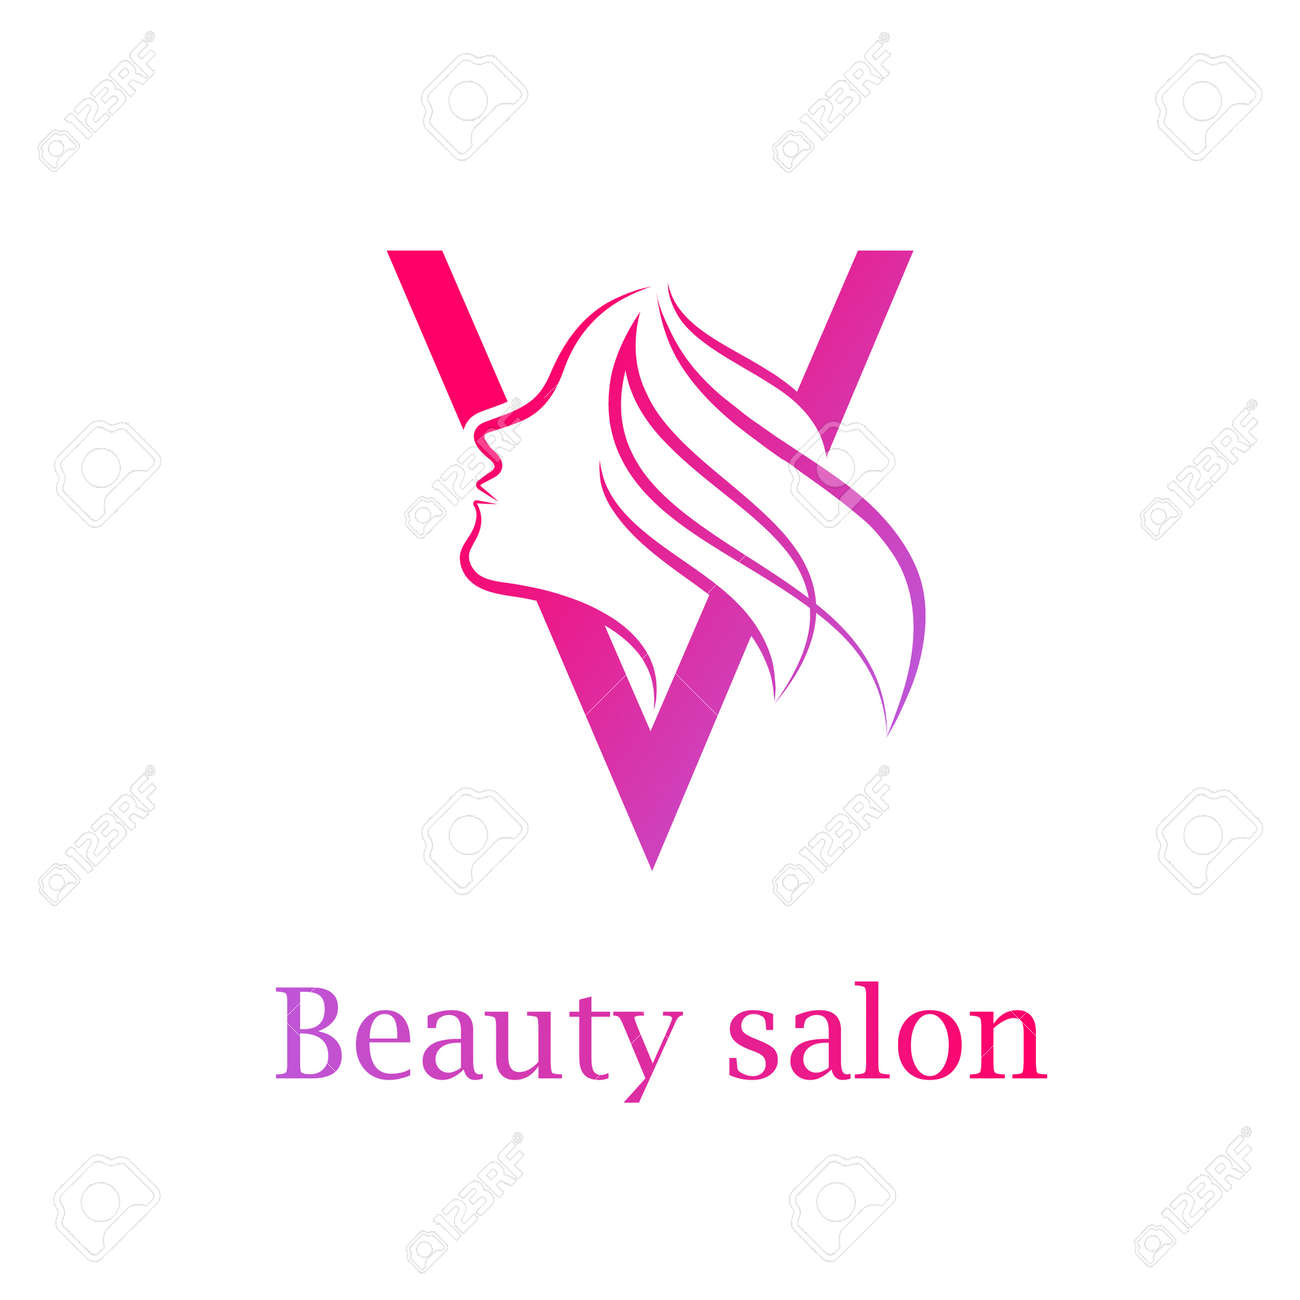 Abstract Letter V Logo Beauty Salon Logo Design Template Royalty Free Cliparts Vectors And Stock Illustration Image 84733915